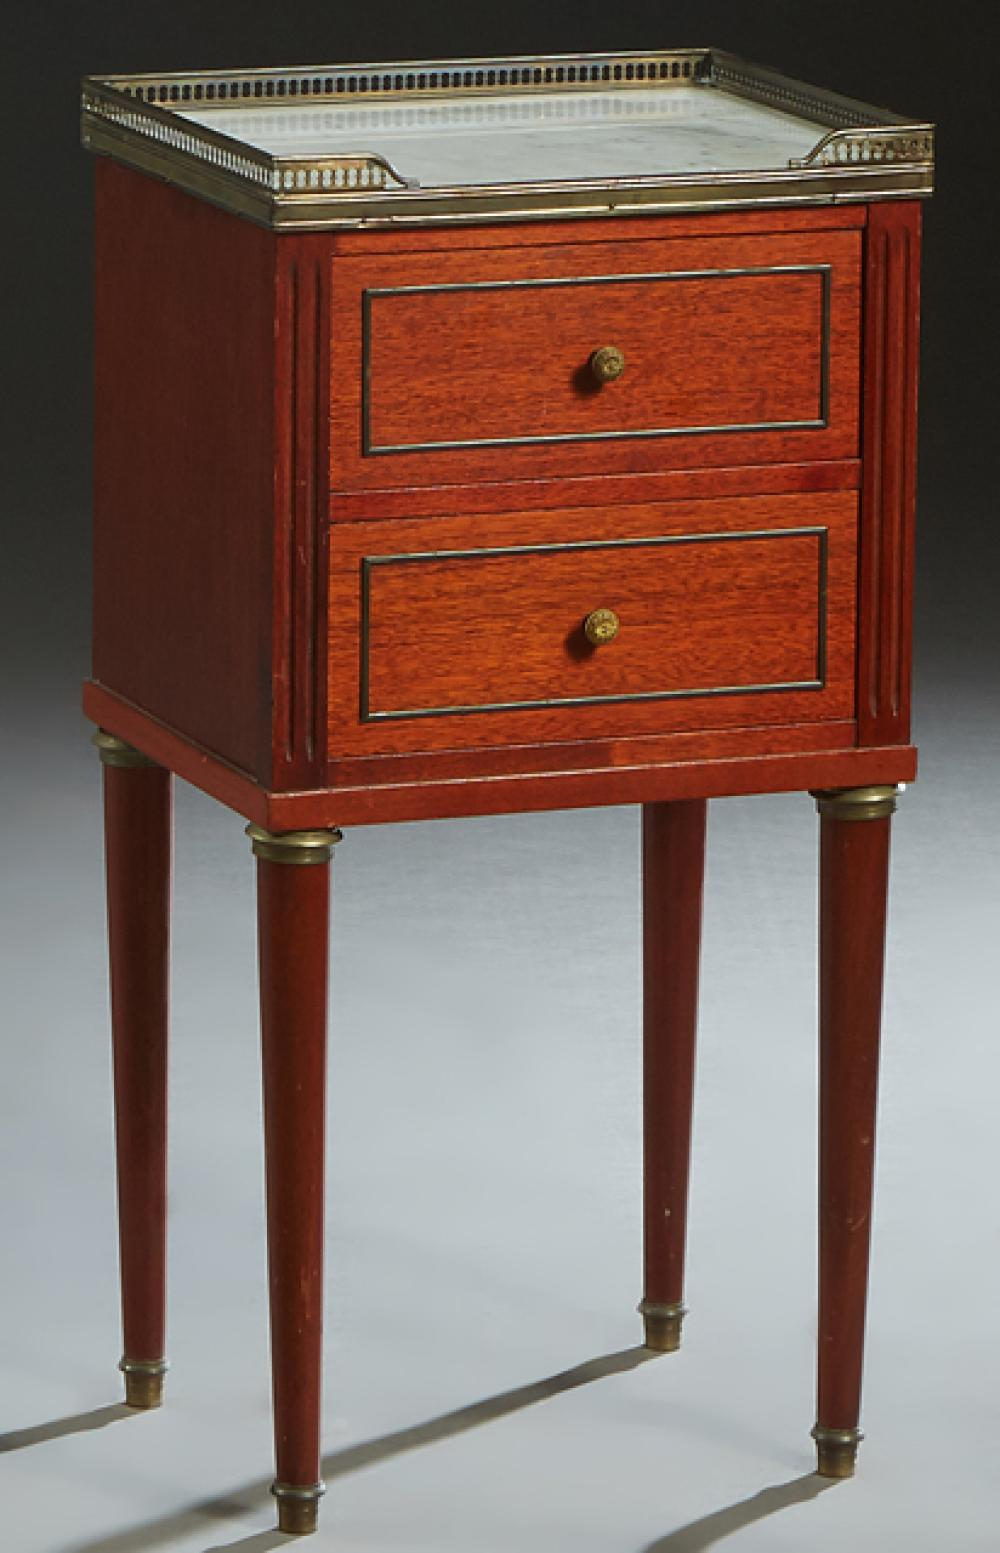 French Louis XVI Style Carved Mahogany Marble Top Nightstand, 20th c., the brass galleried top with an inset figured white marble ab...